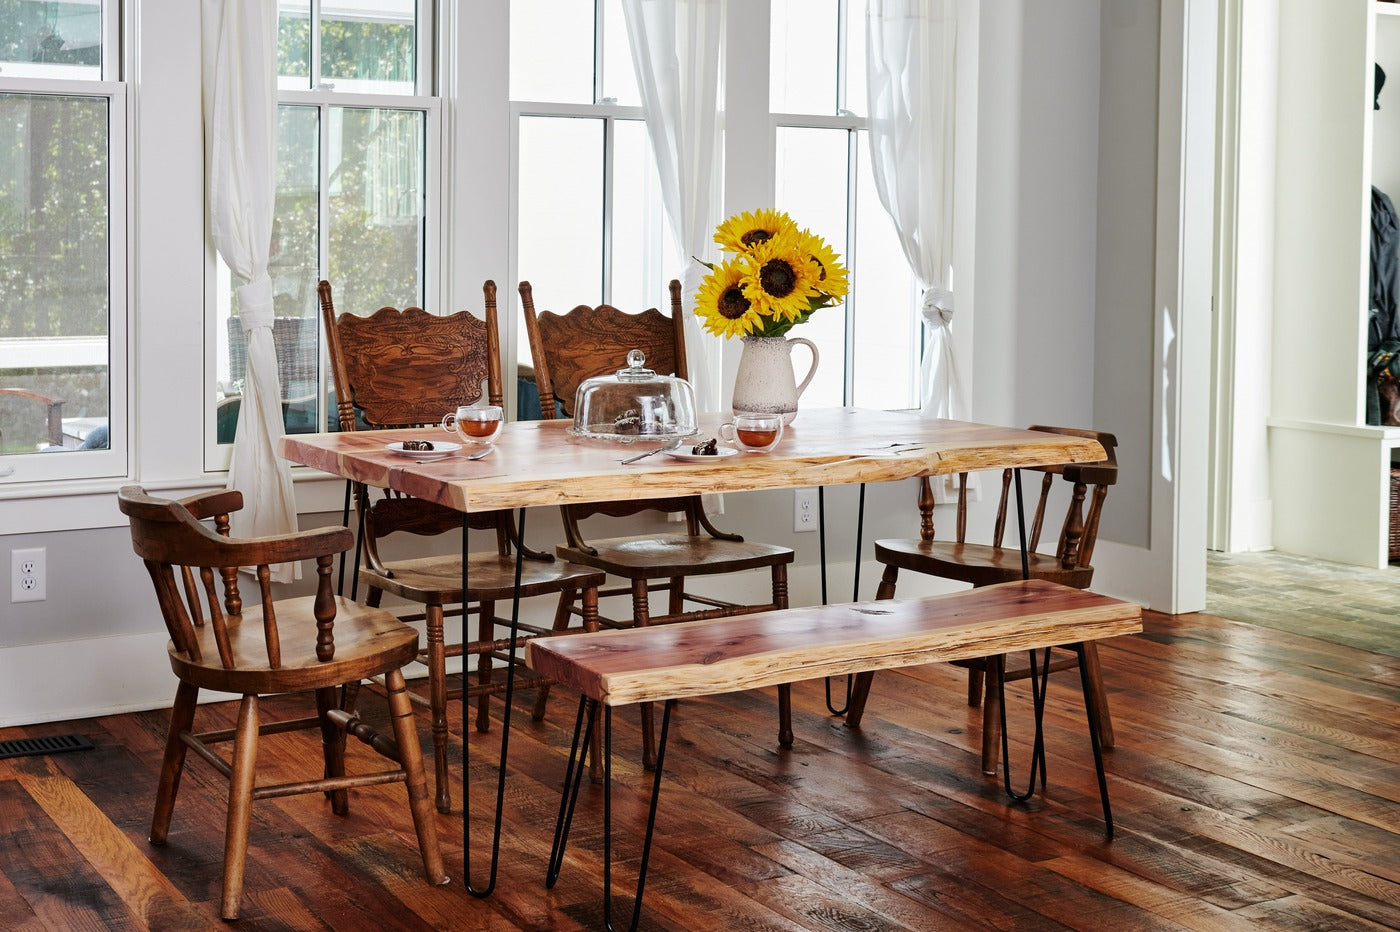 Live edge dining table in kitchen with a matching bench and 4 chairs to seat 6 people. Sustainably handmade in the USA by Knaughty Log Co.